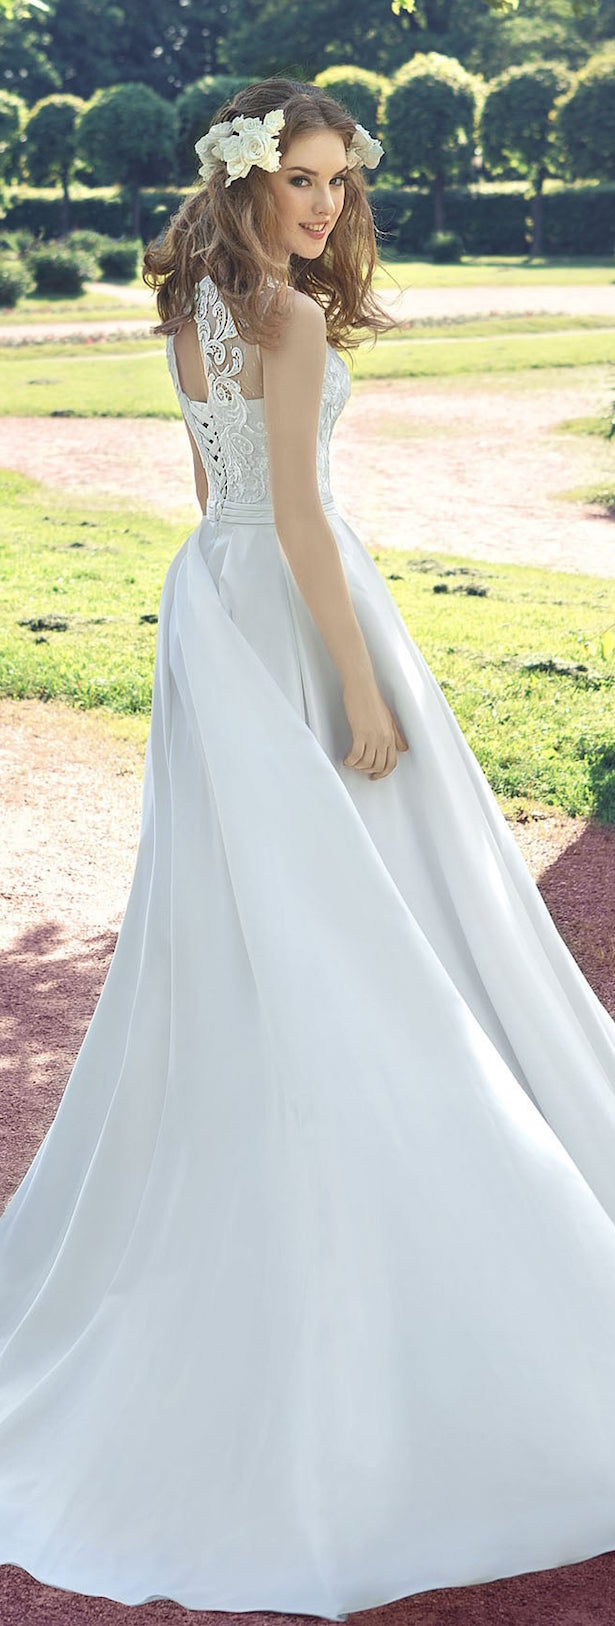 Milva 2016 Wedding Dresses - Fairy Gardens Collection - Belle The ...